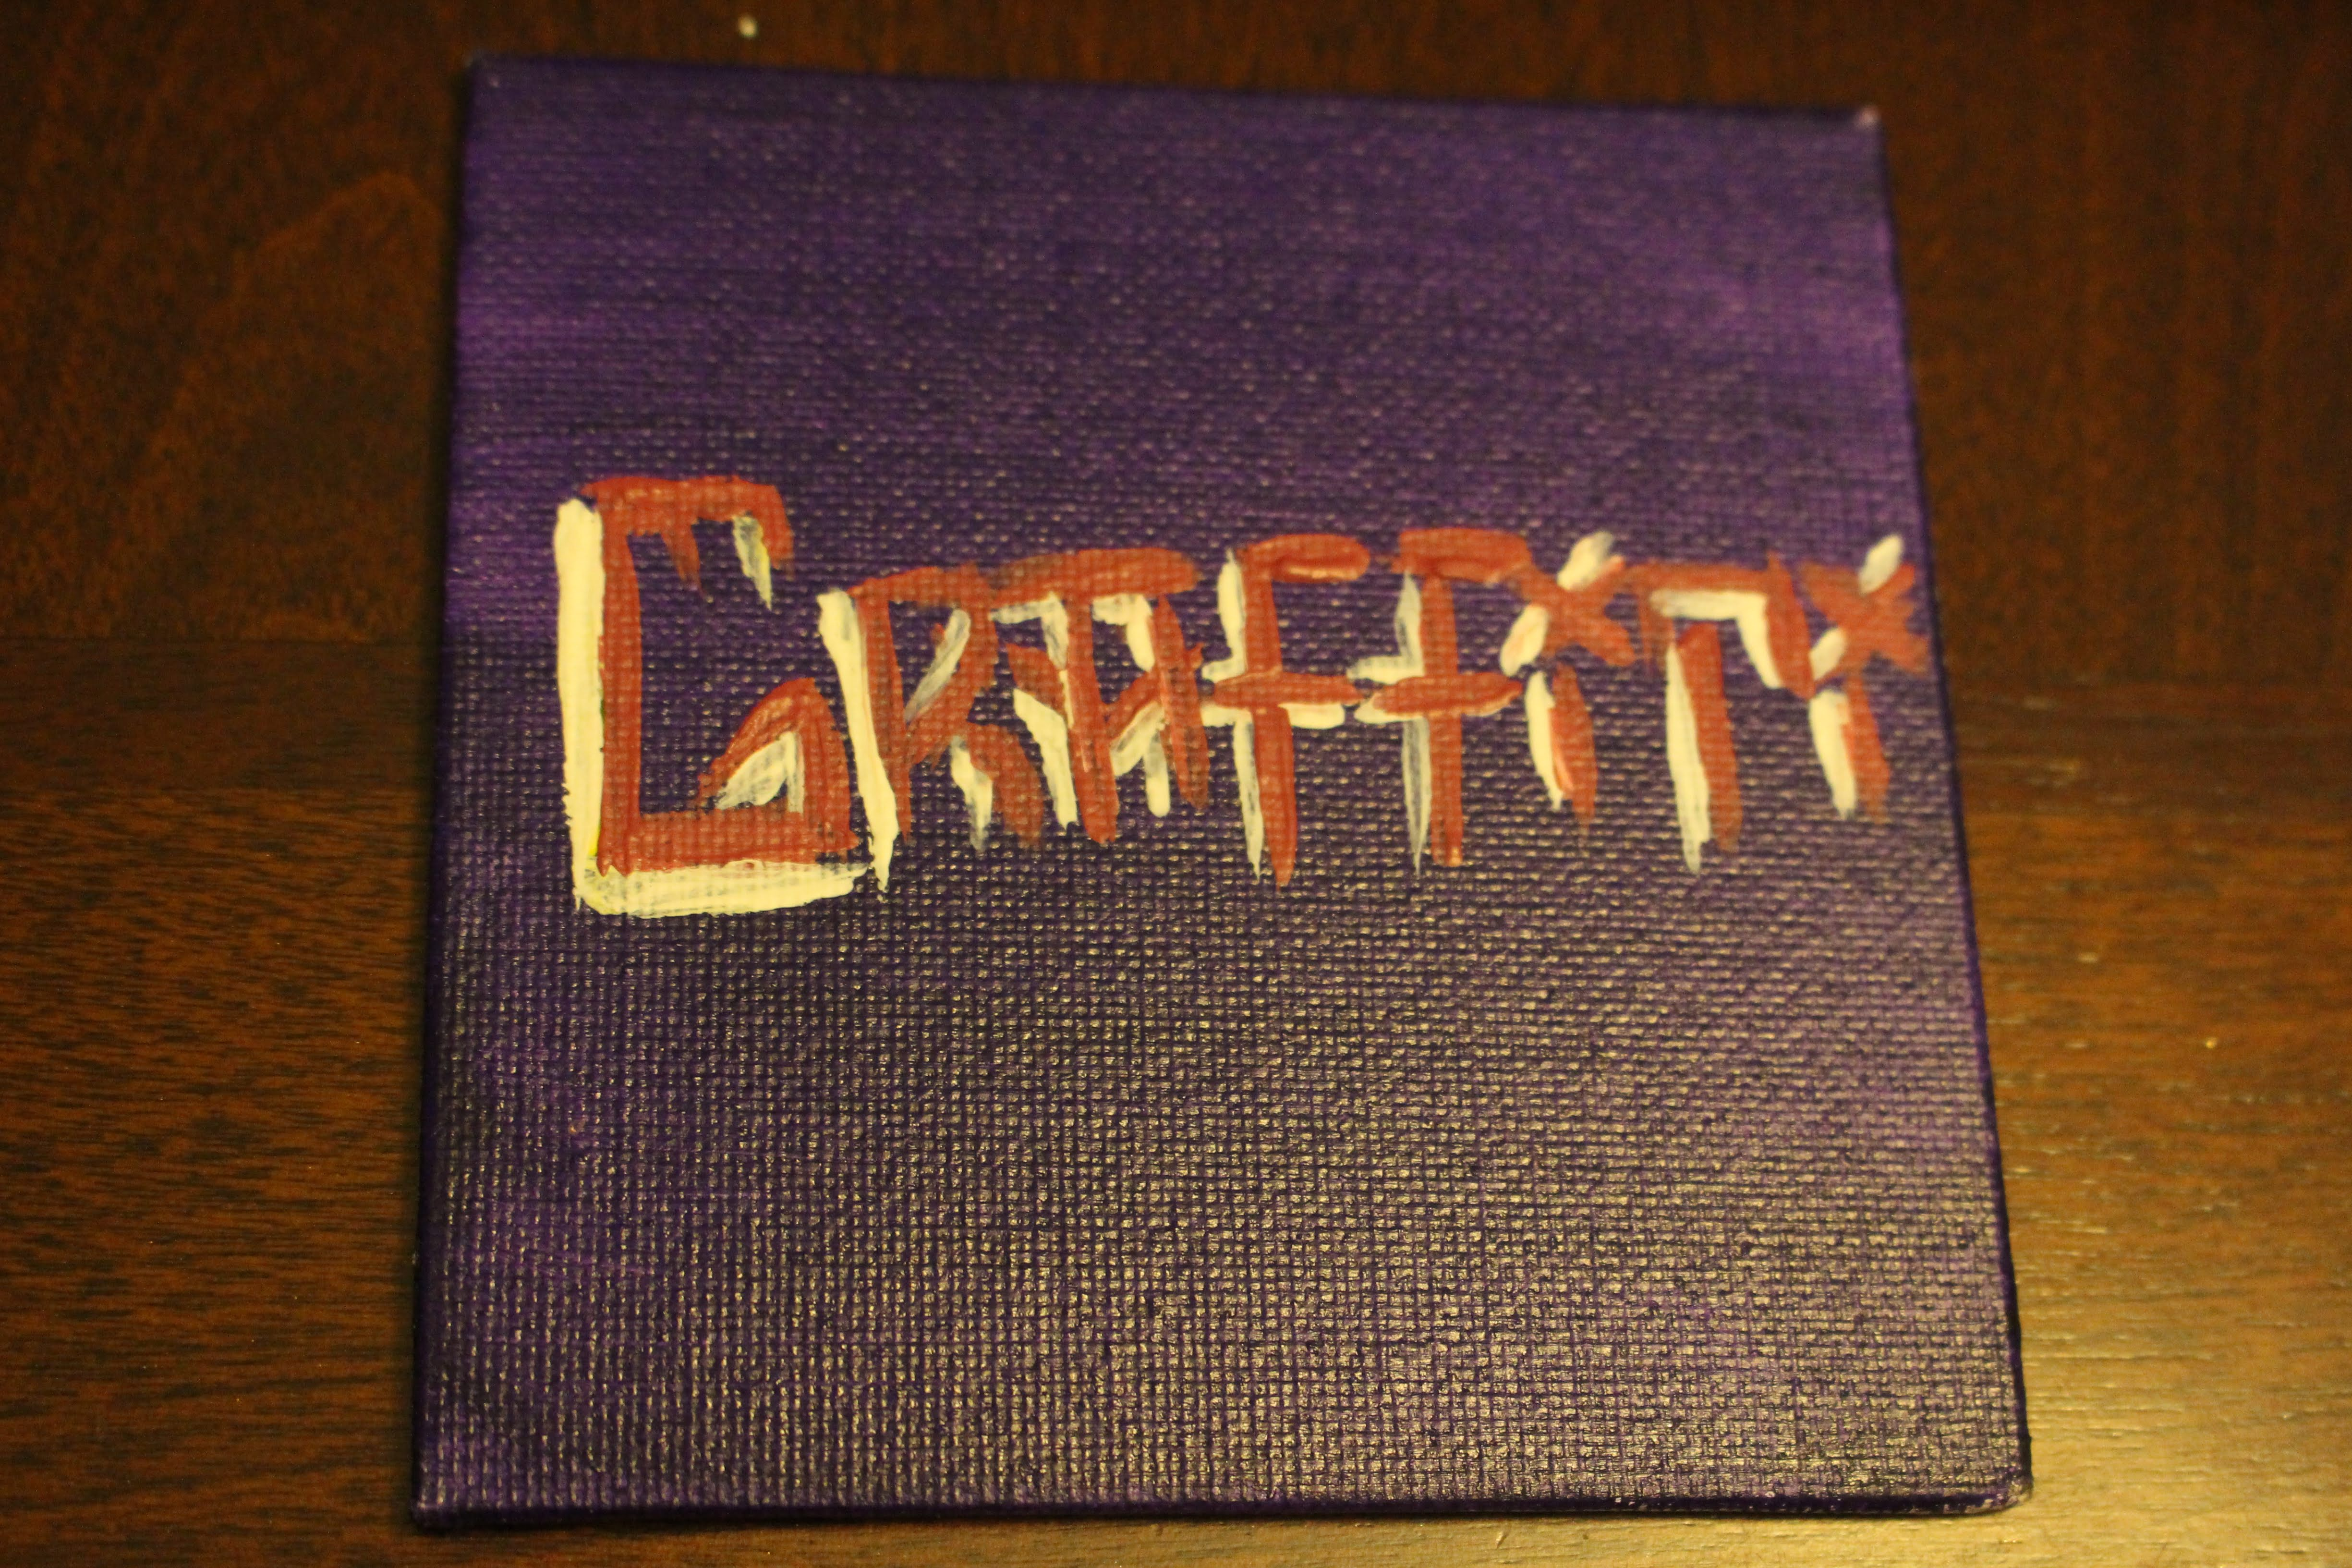 "This is a painting of the word 'Graffiti' on a mini canvas. This word represents one of the 'four elements of hip hop""."